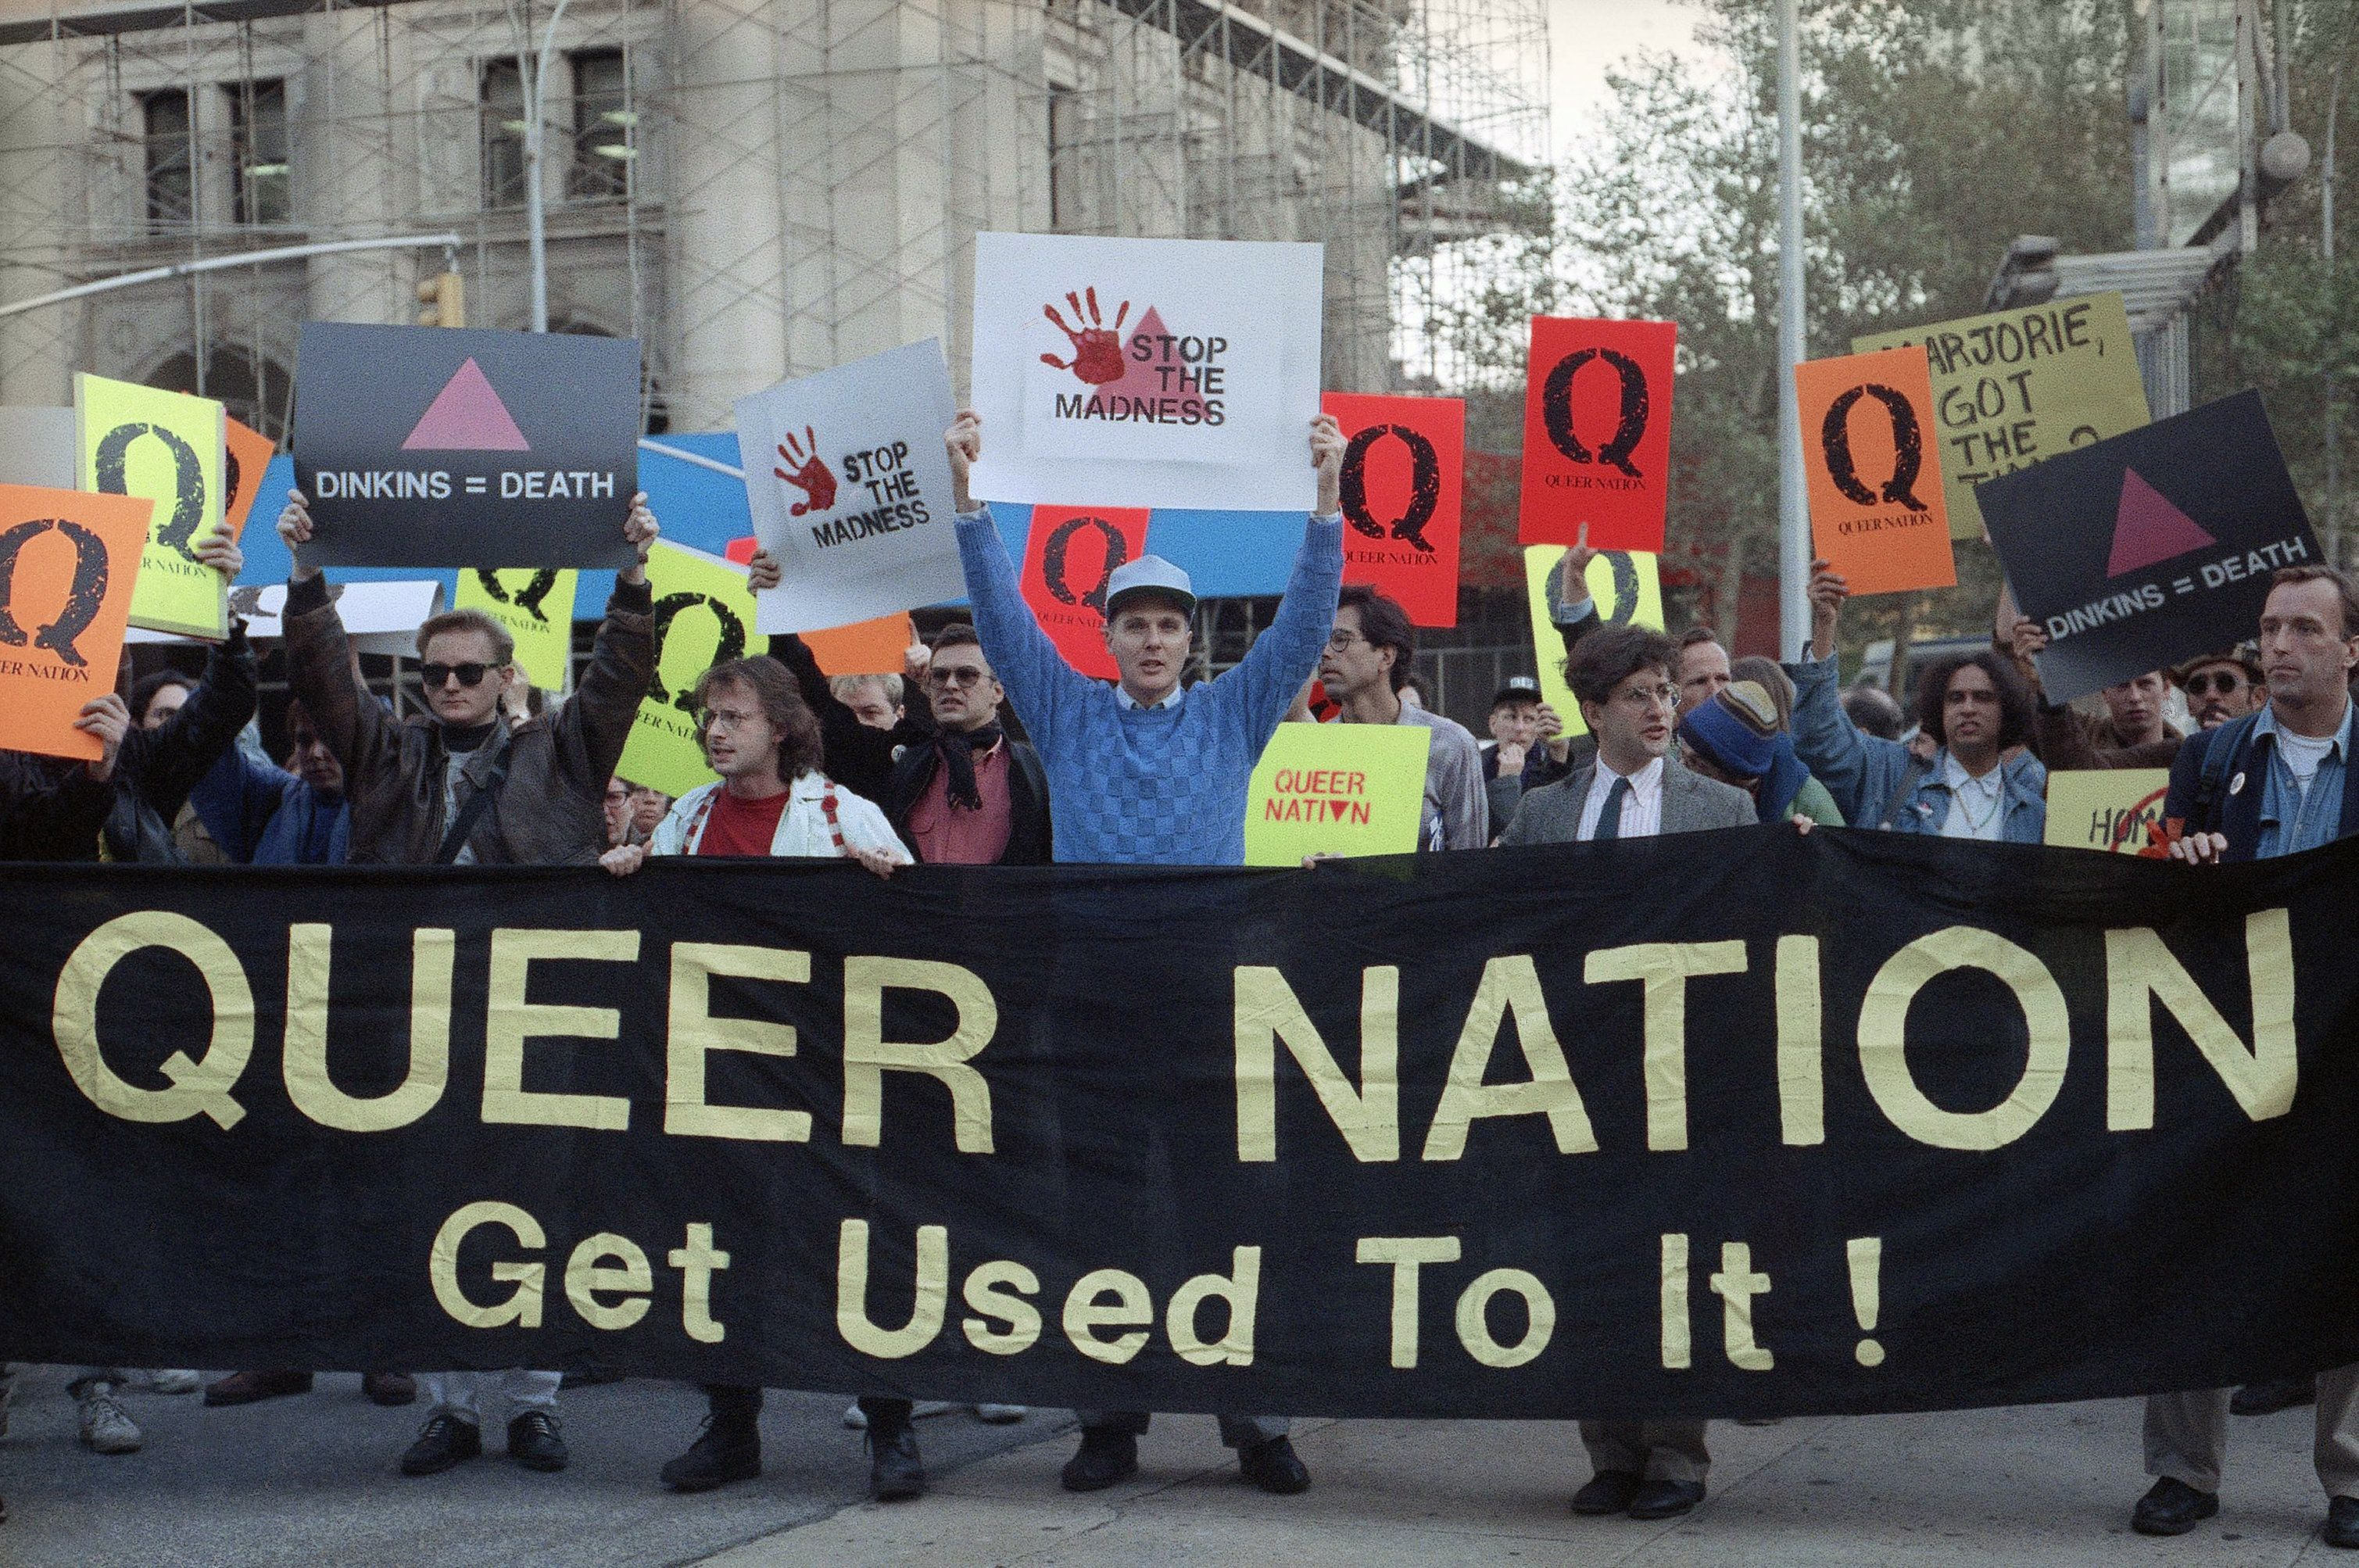 Members of the gay activist group, Queer Nation, rally outside New Yorks City Hall on Nov. 1, 1990 to protest what they say is Mayor Dinkins and the police departments inaction on violence against gays. Queer Nation is one of several militant day organizations which have discarded polite persuasion in favor of grab-them-by-the-lapels defiance. (AP Photo/Zoe Selsky)